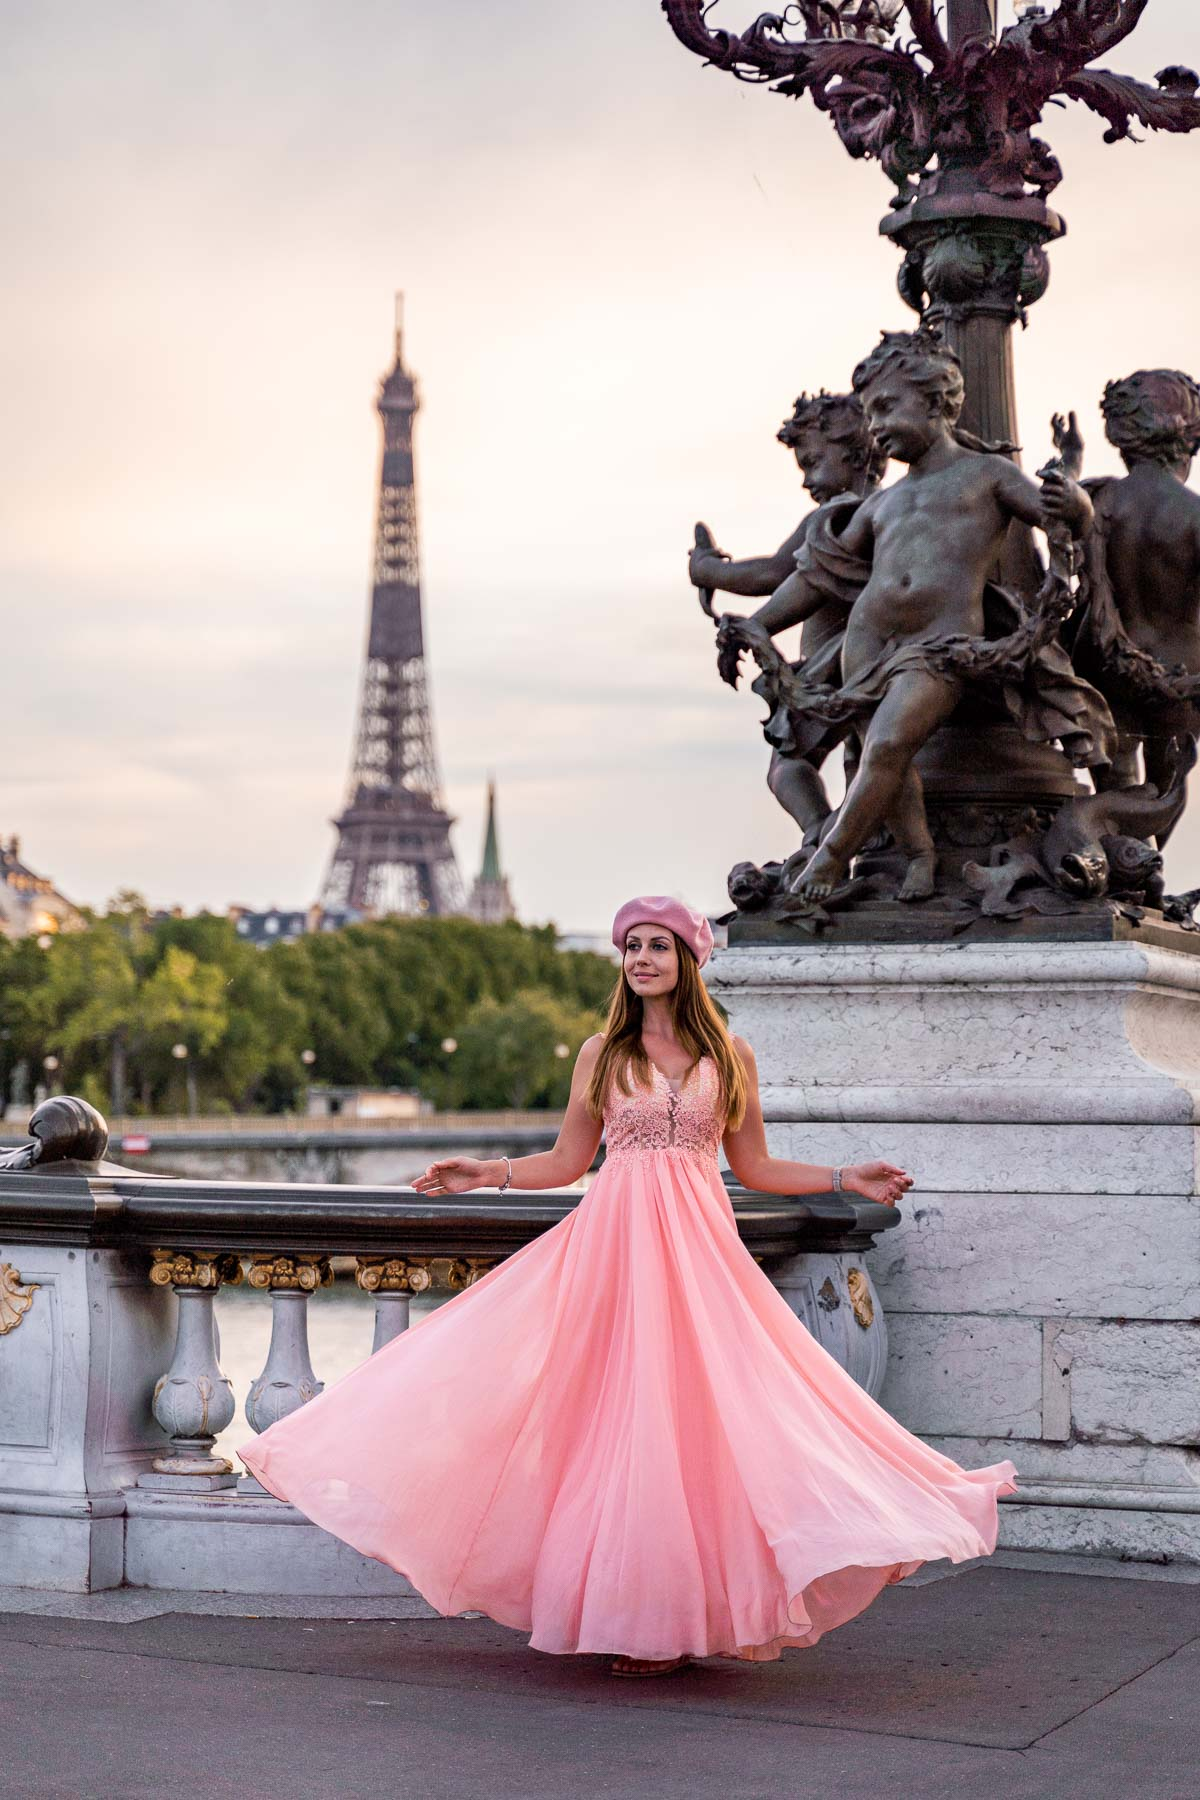 Girl in a pink dress twirling on Pont Alexandre III with the Eiffel Tower in the background